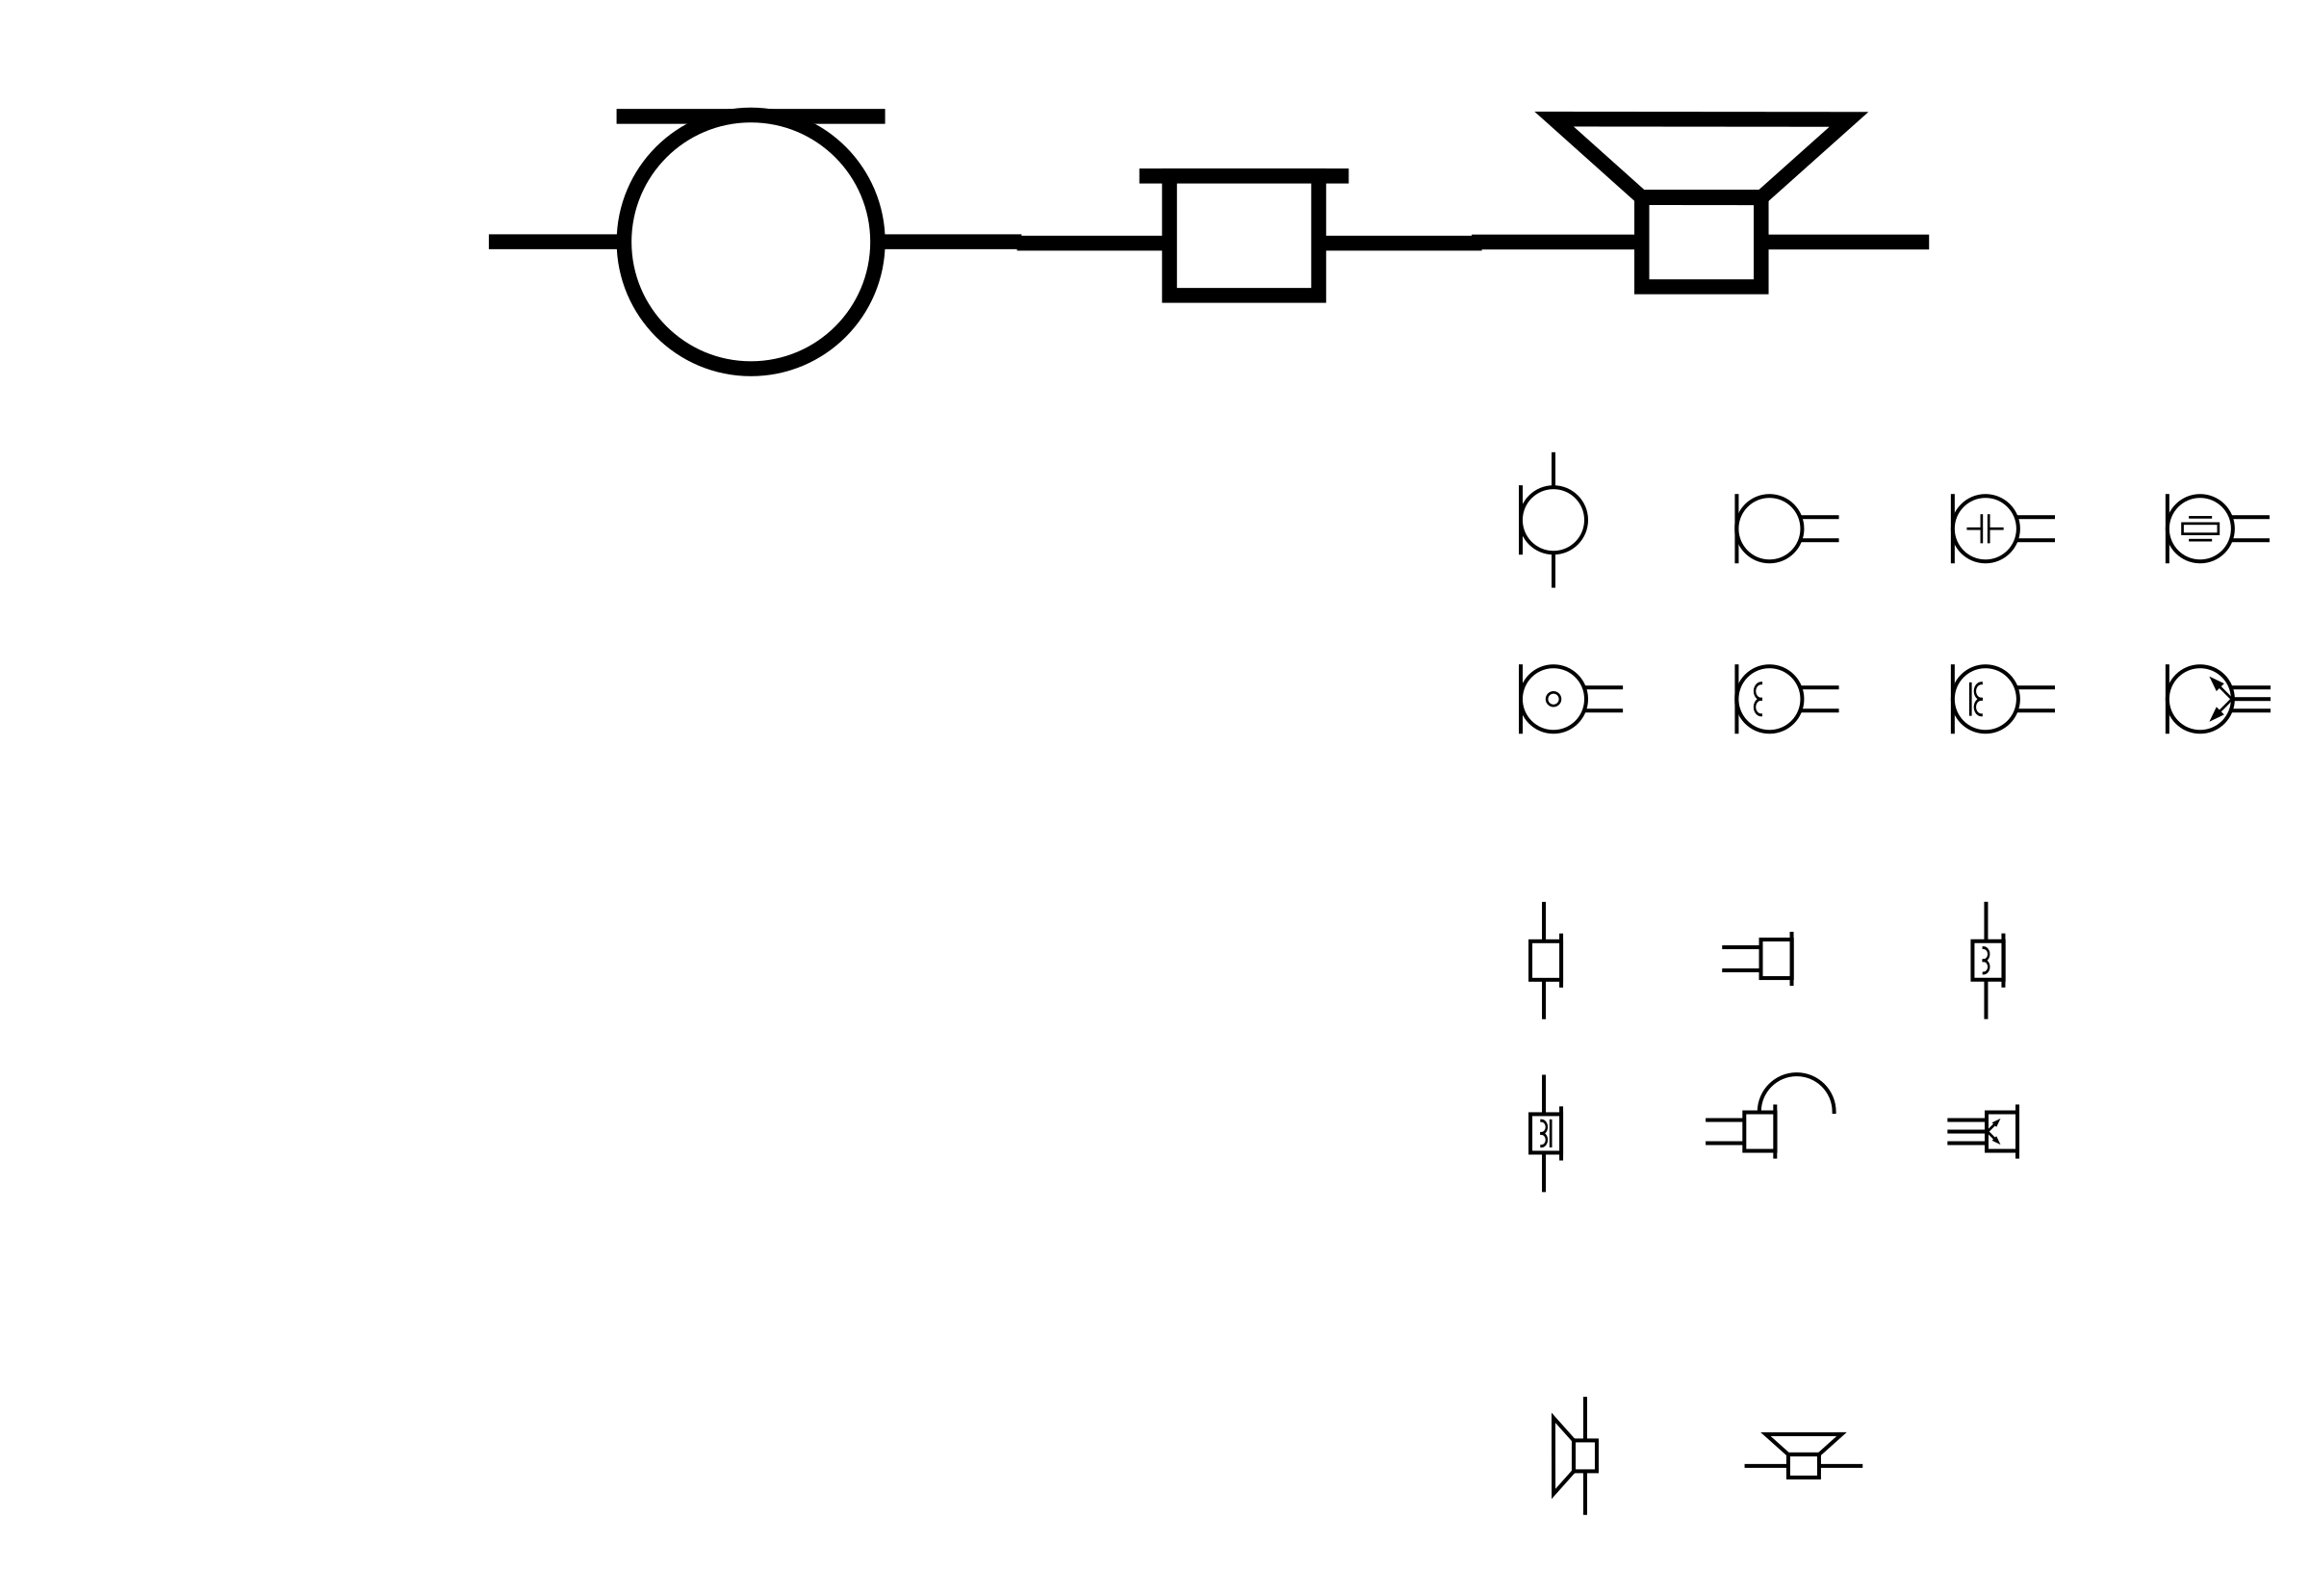 Clipart - Fixed: GOST Electronic symbols: electroacoustic devices